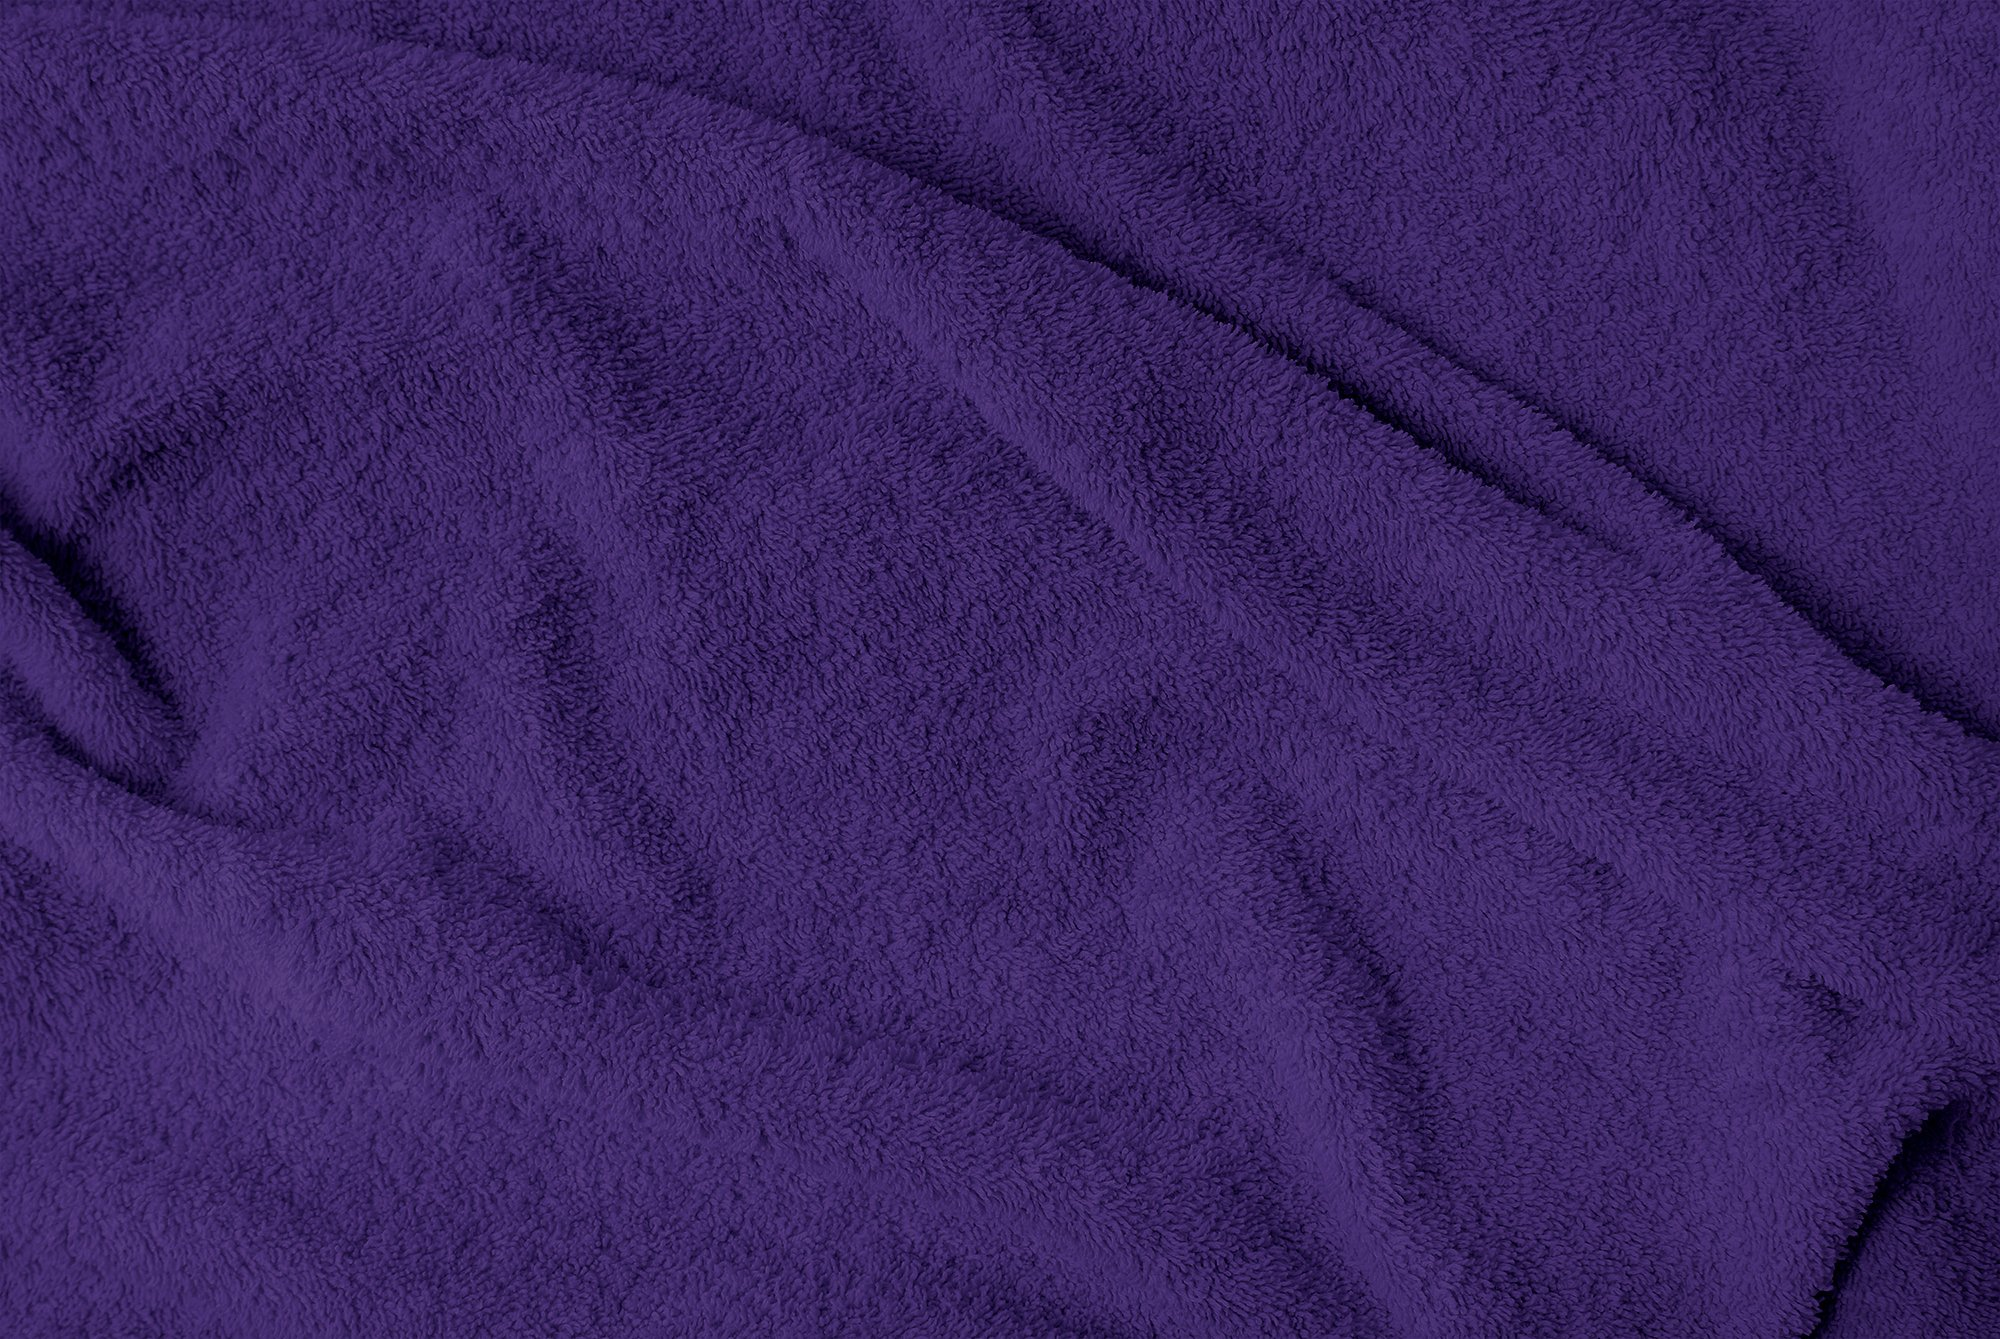 Puffy Cotton Large Bath Towel - 4 Pack Set - Oversize Bath Sheet (Hotel, Spa, Bath) Super Soft and Observant (Purple) by Puffy Cotton (Image #3)